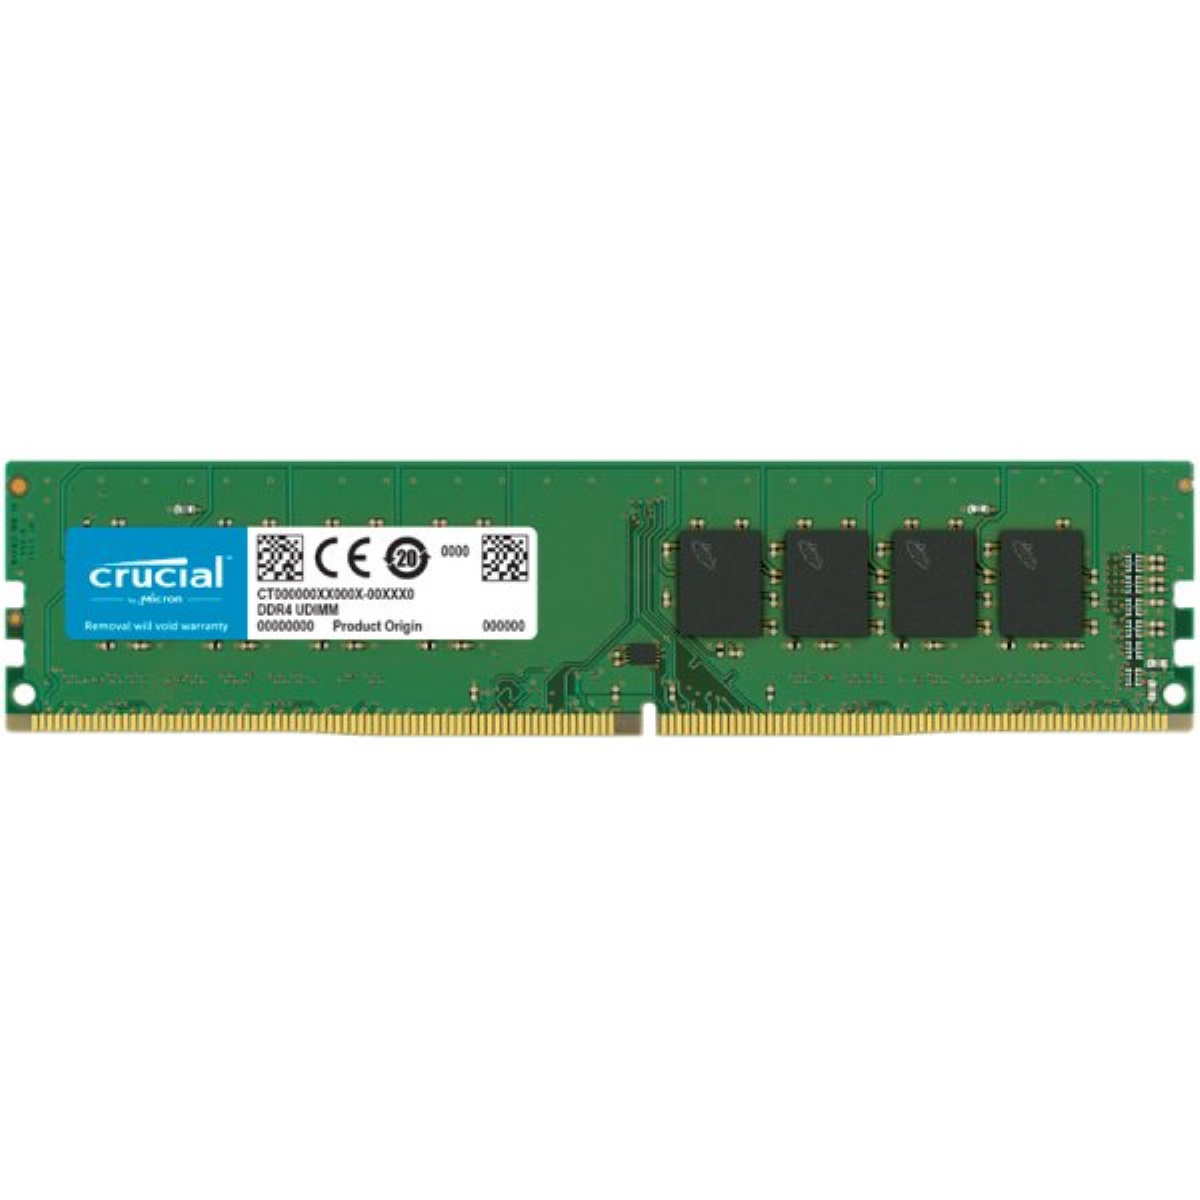 Памет Crucial 8GB DDR4 3200MHz CL22